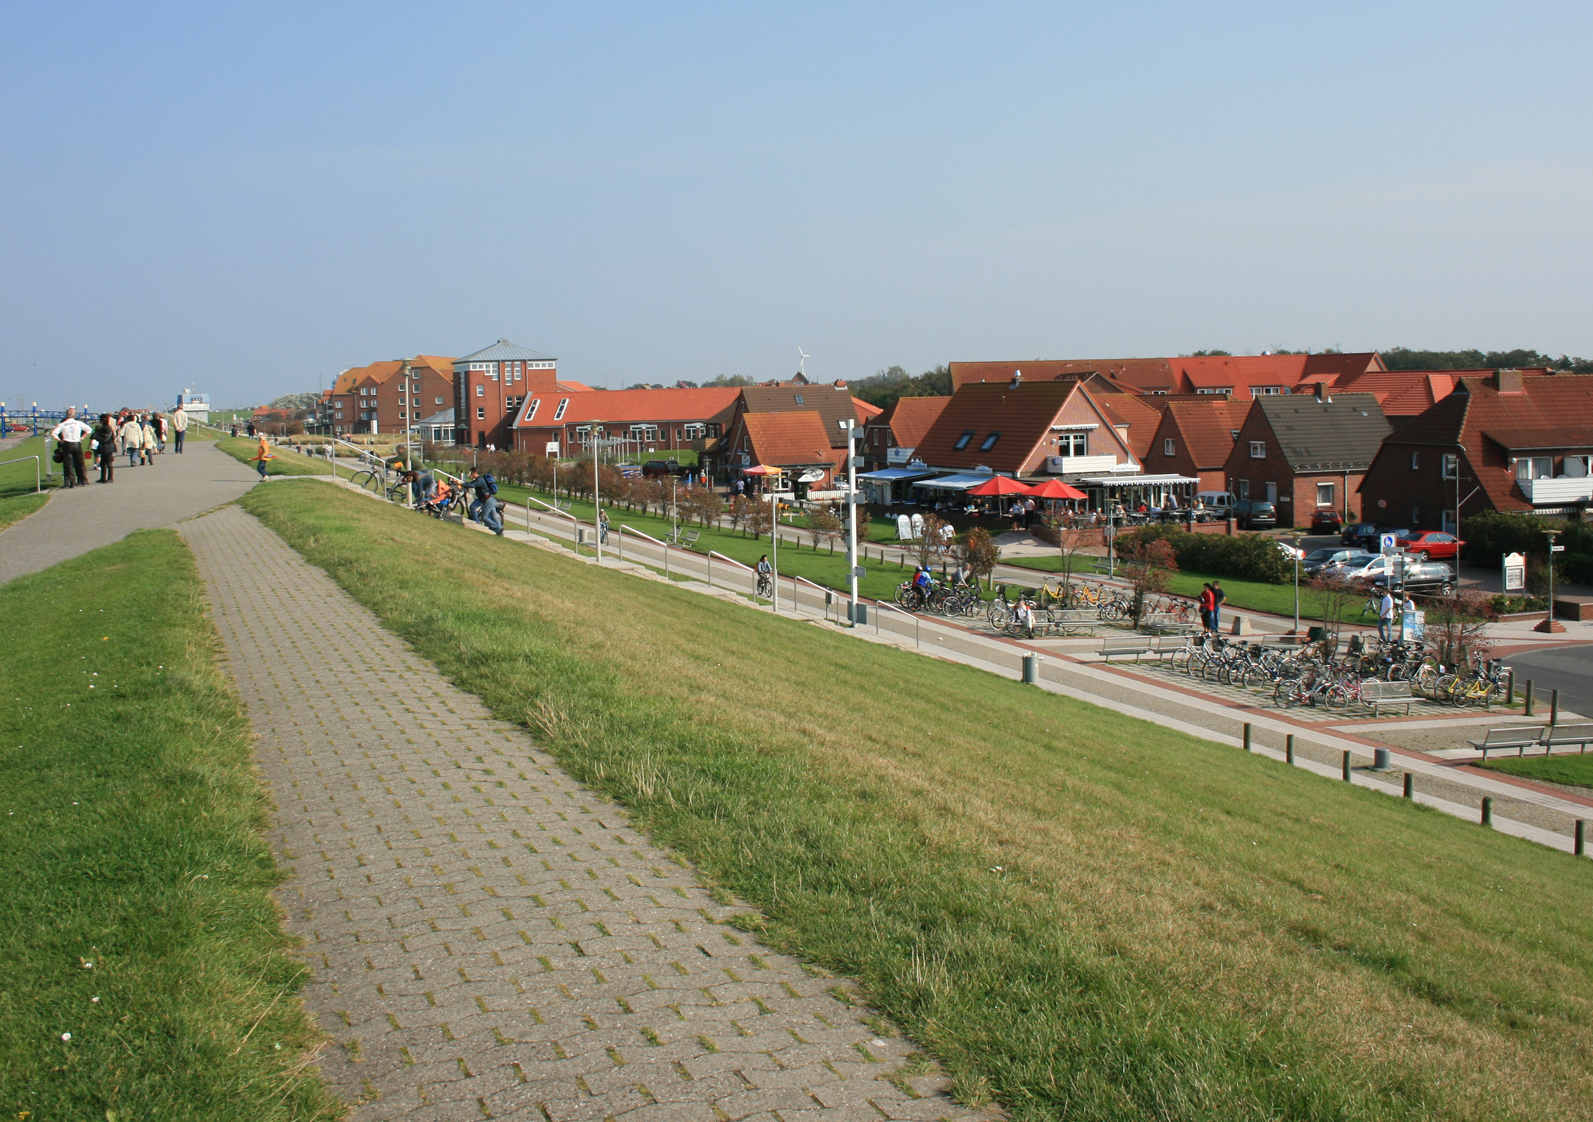 Norden Norddeich – Travel guide at Wikivoyage